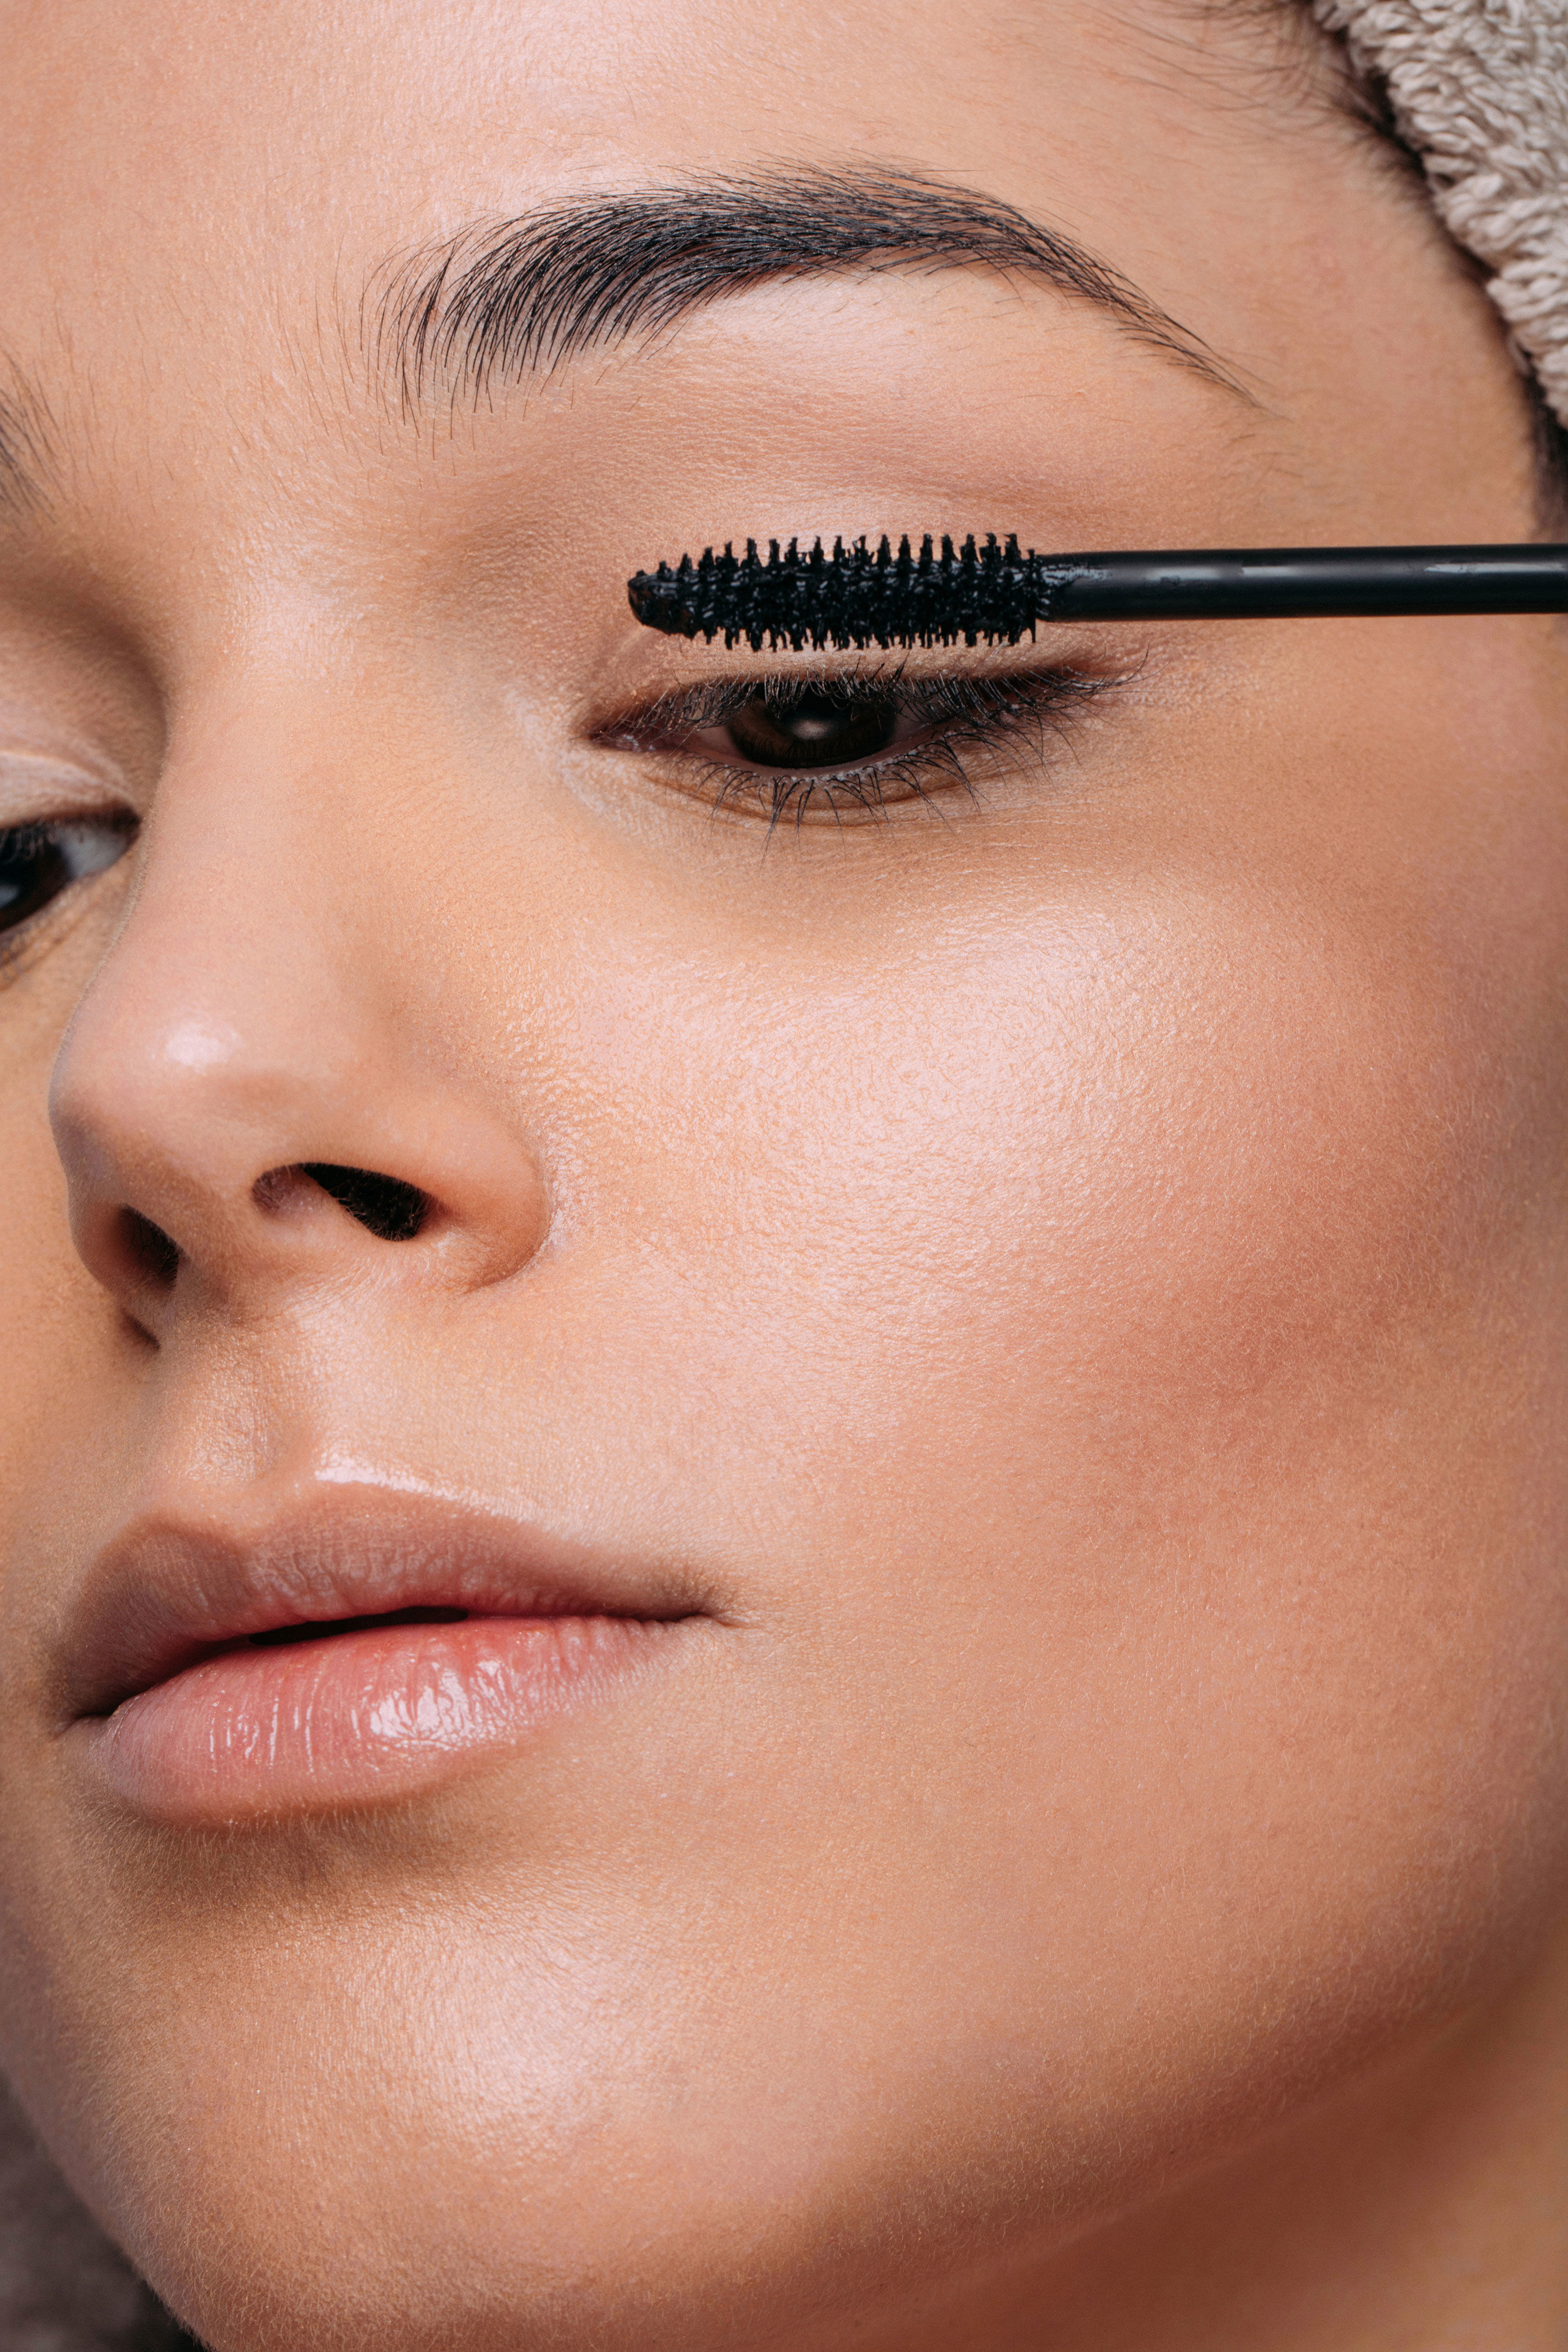 Amazon's Best-Reviewed Mascara Claims to Lengthen Eyelashes By '300 Percent'